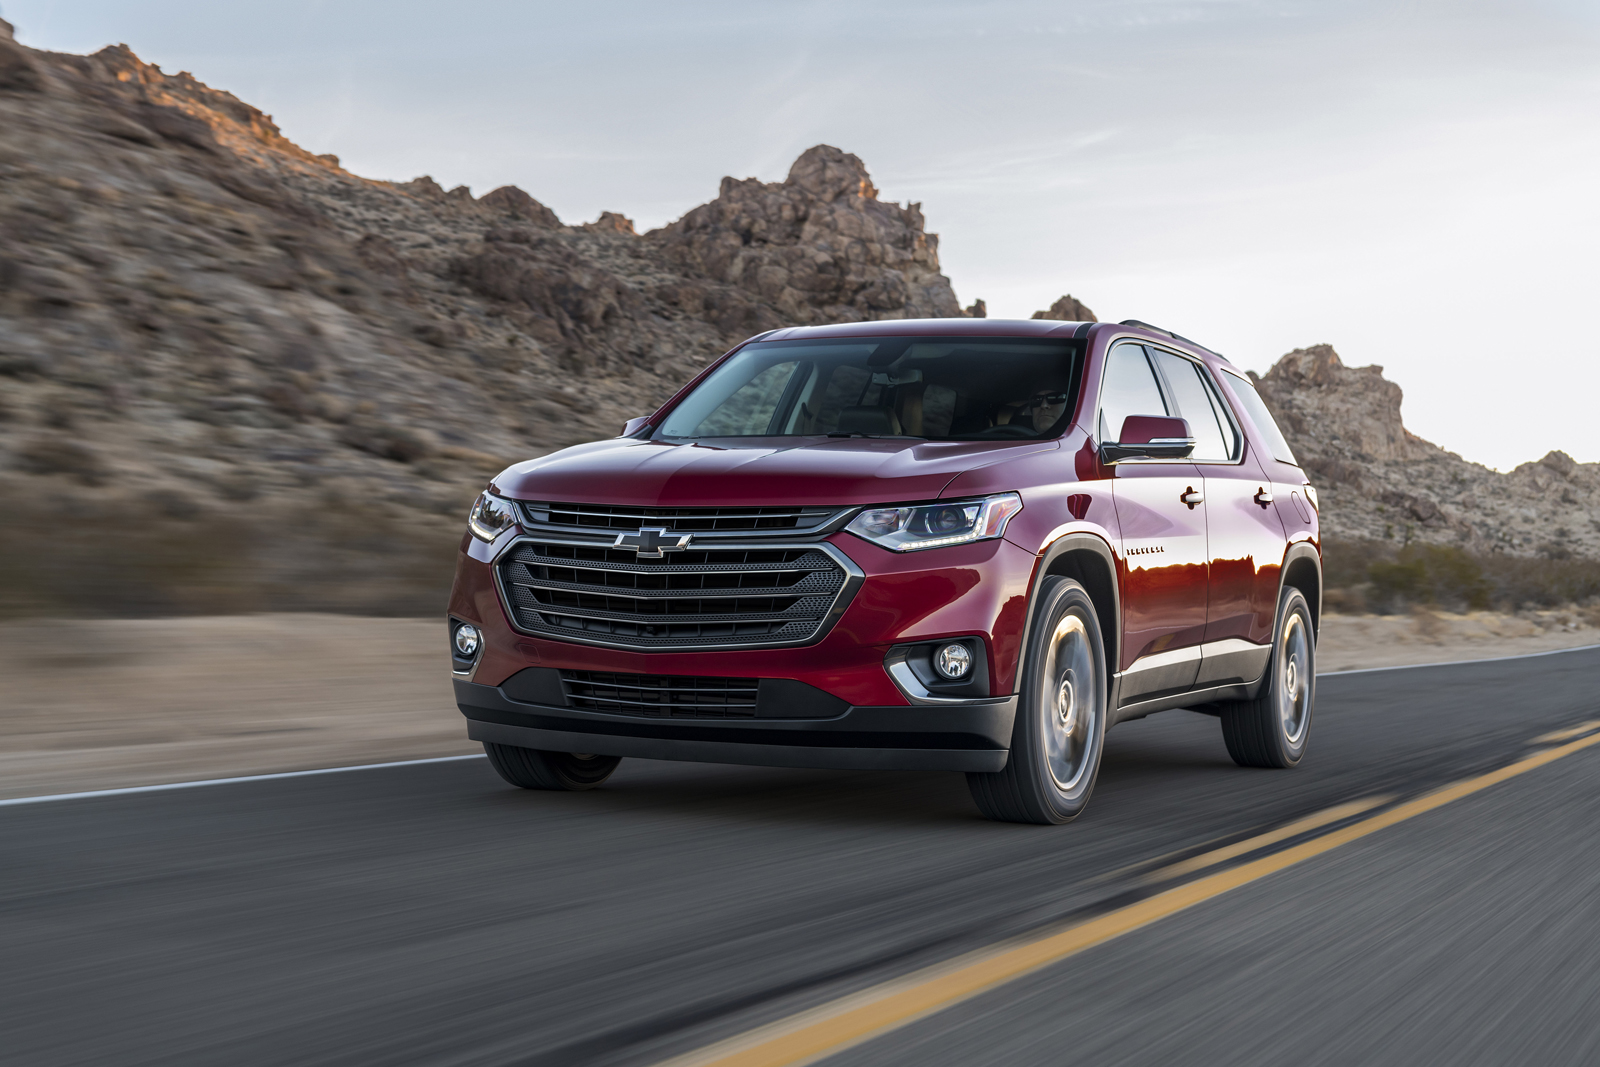 the 2018 traverse rs features a more street inspired style with blacked out styling